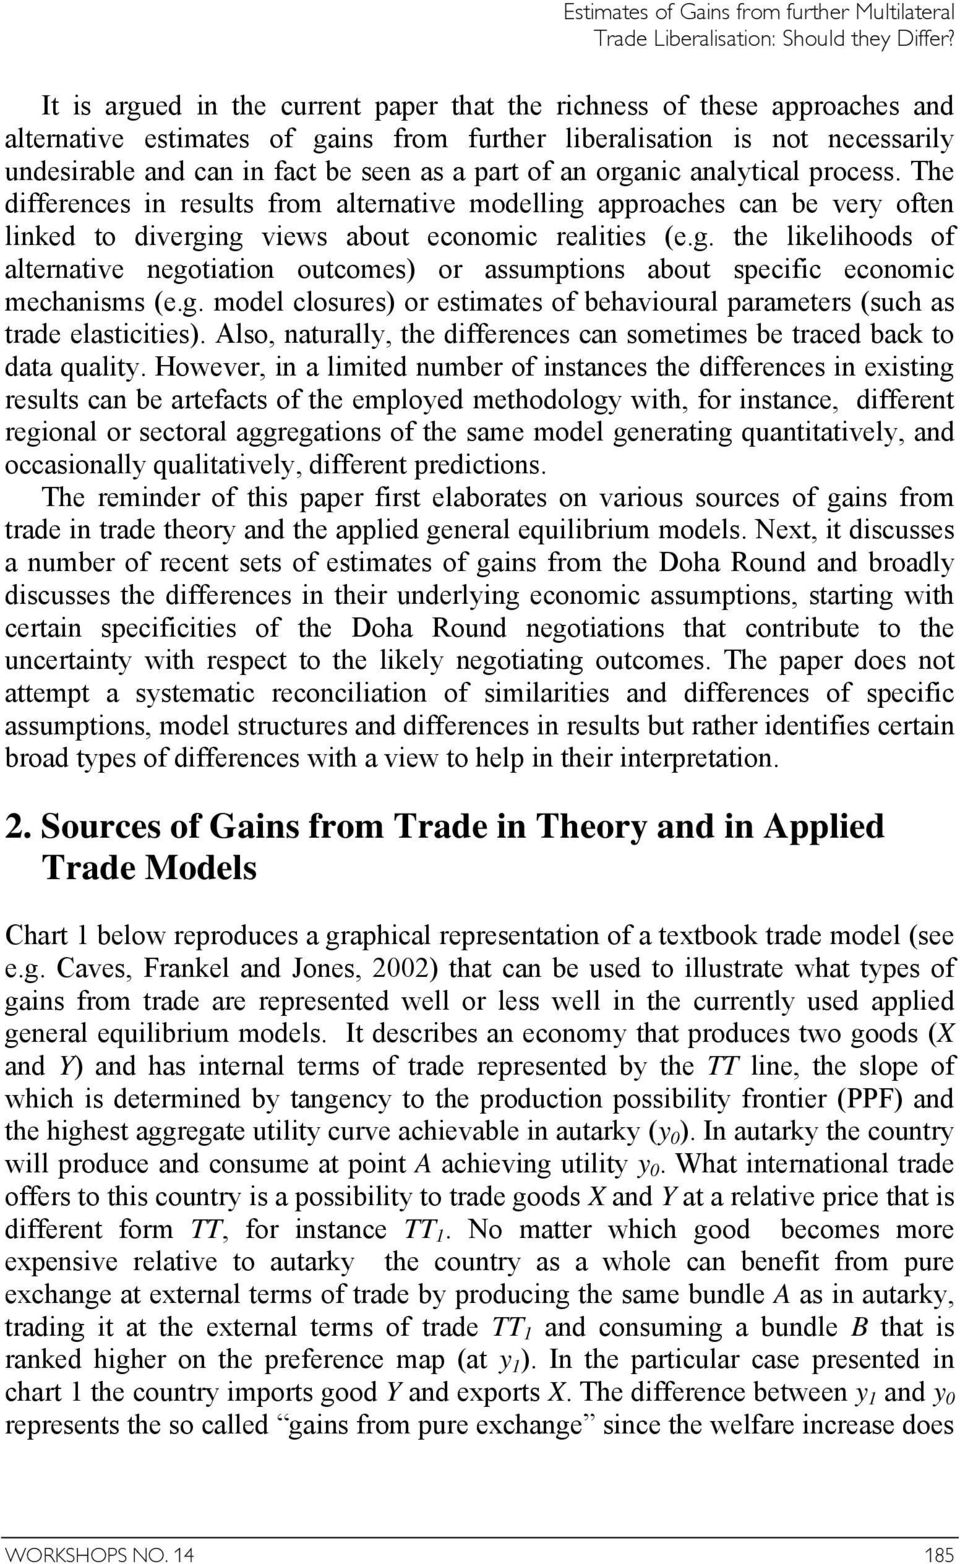 g. model closures) or estimates of behavioural parameters (such as trade elasticities). Also, naturally, the differences can sometimes be traced back to data quality.